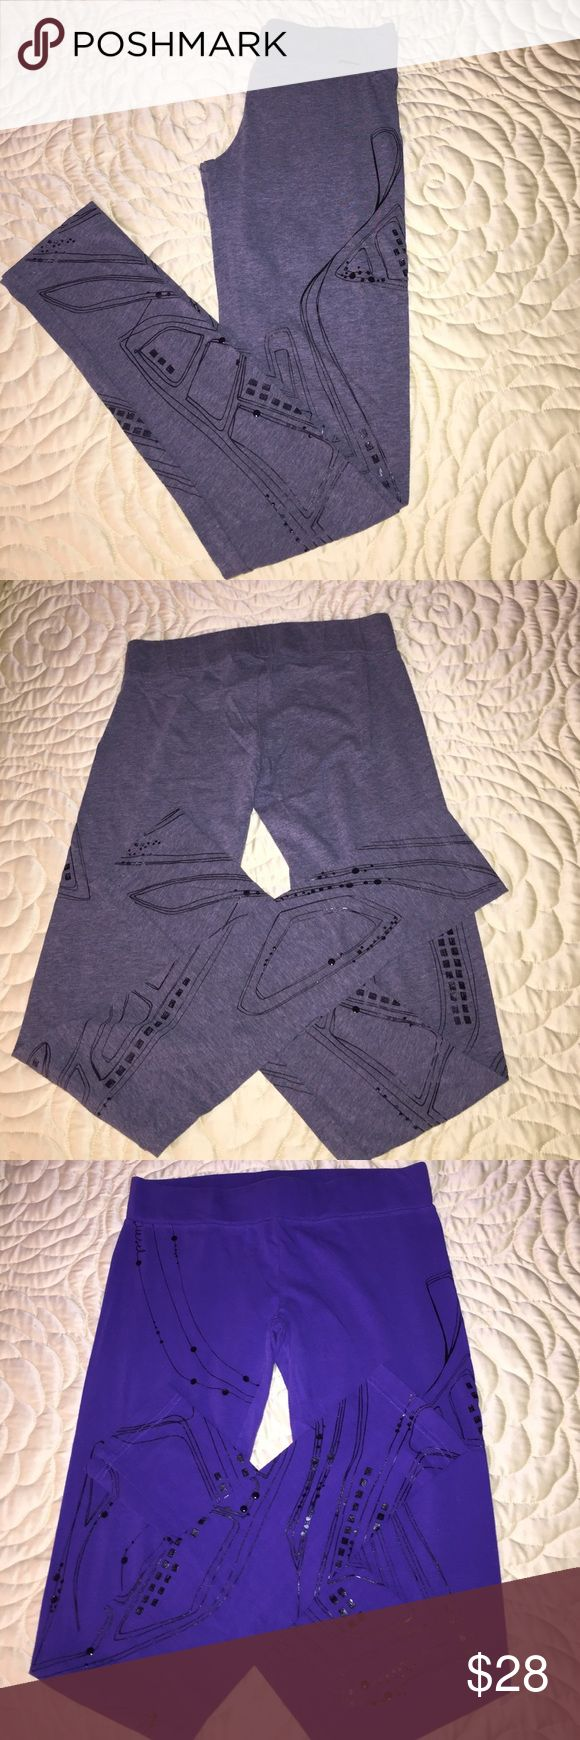 2 pair of Diesel leggings size S .. Two pair of diesel leggings. They are a thin material and have been used but are still great pants. Two pair for one price. A purple pair and a gray pair.  Size S Diesel Pants Leggings